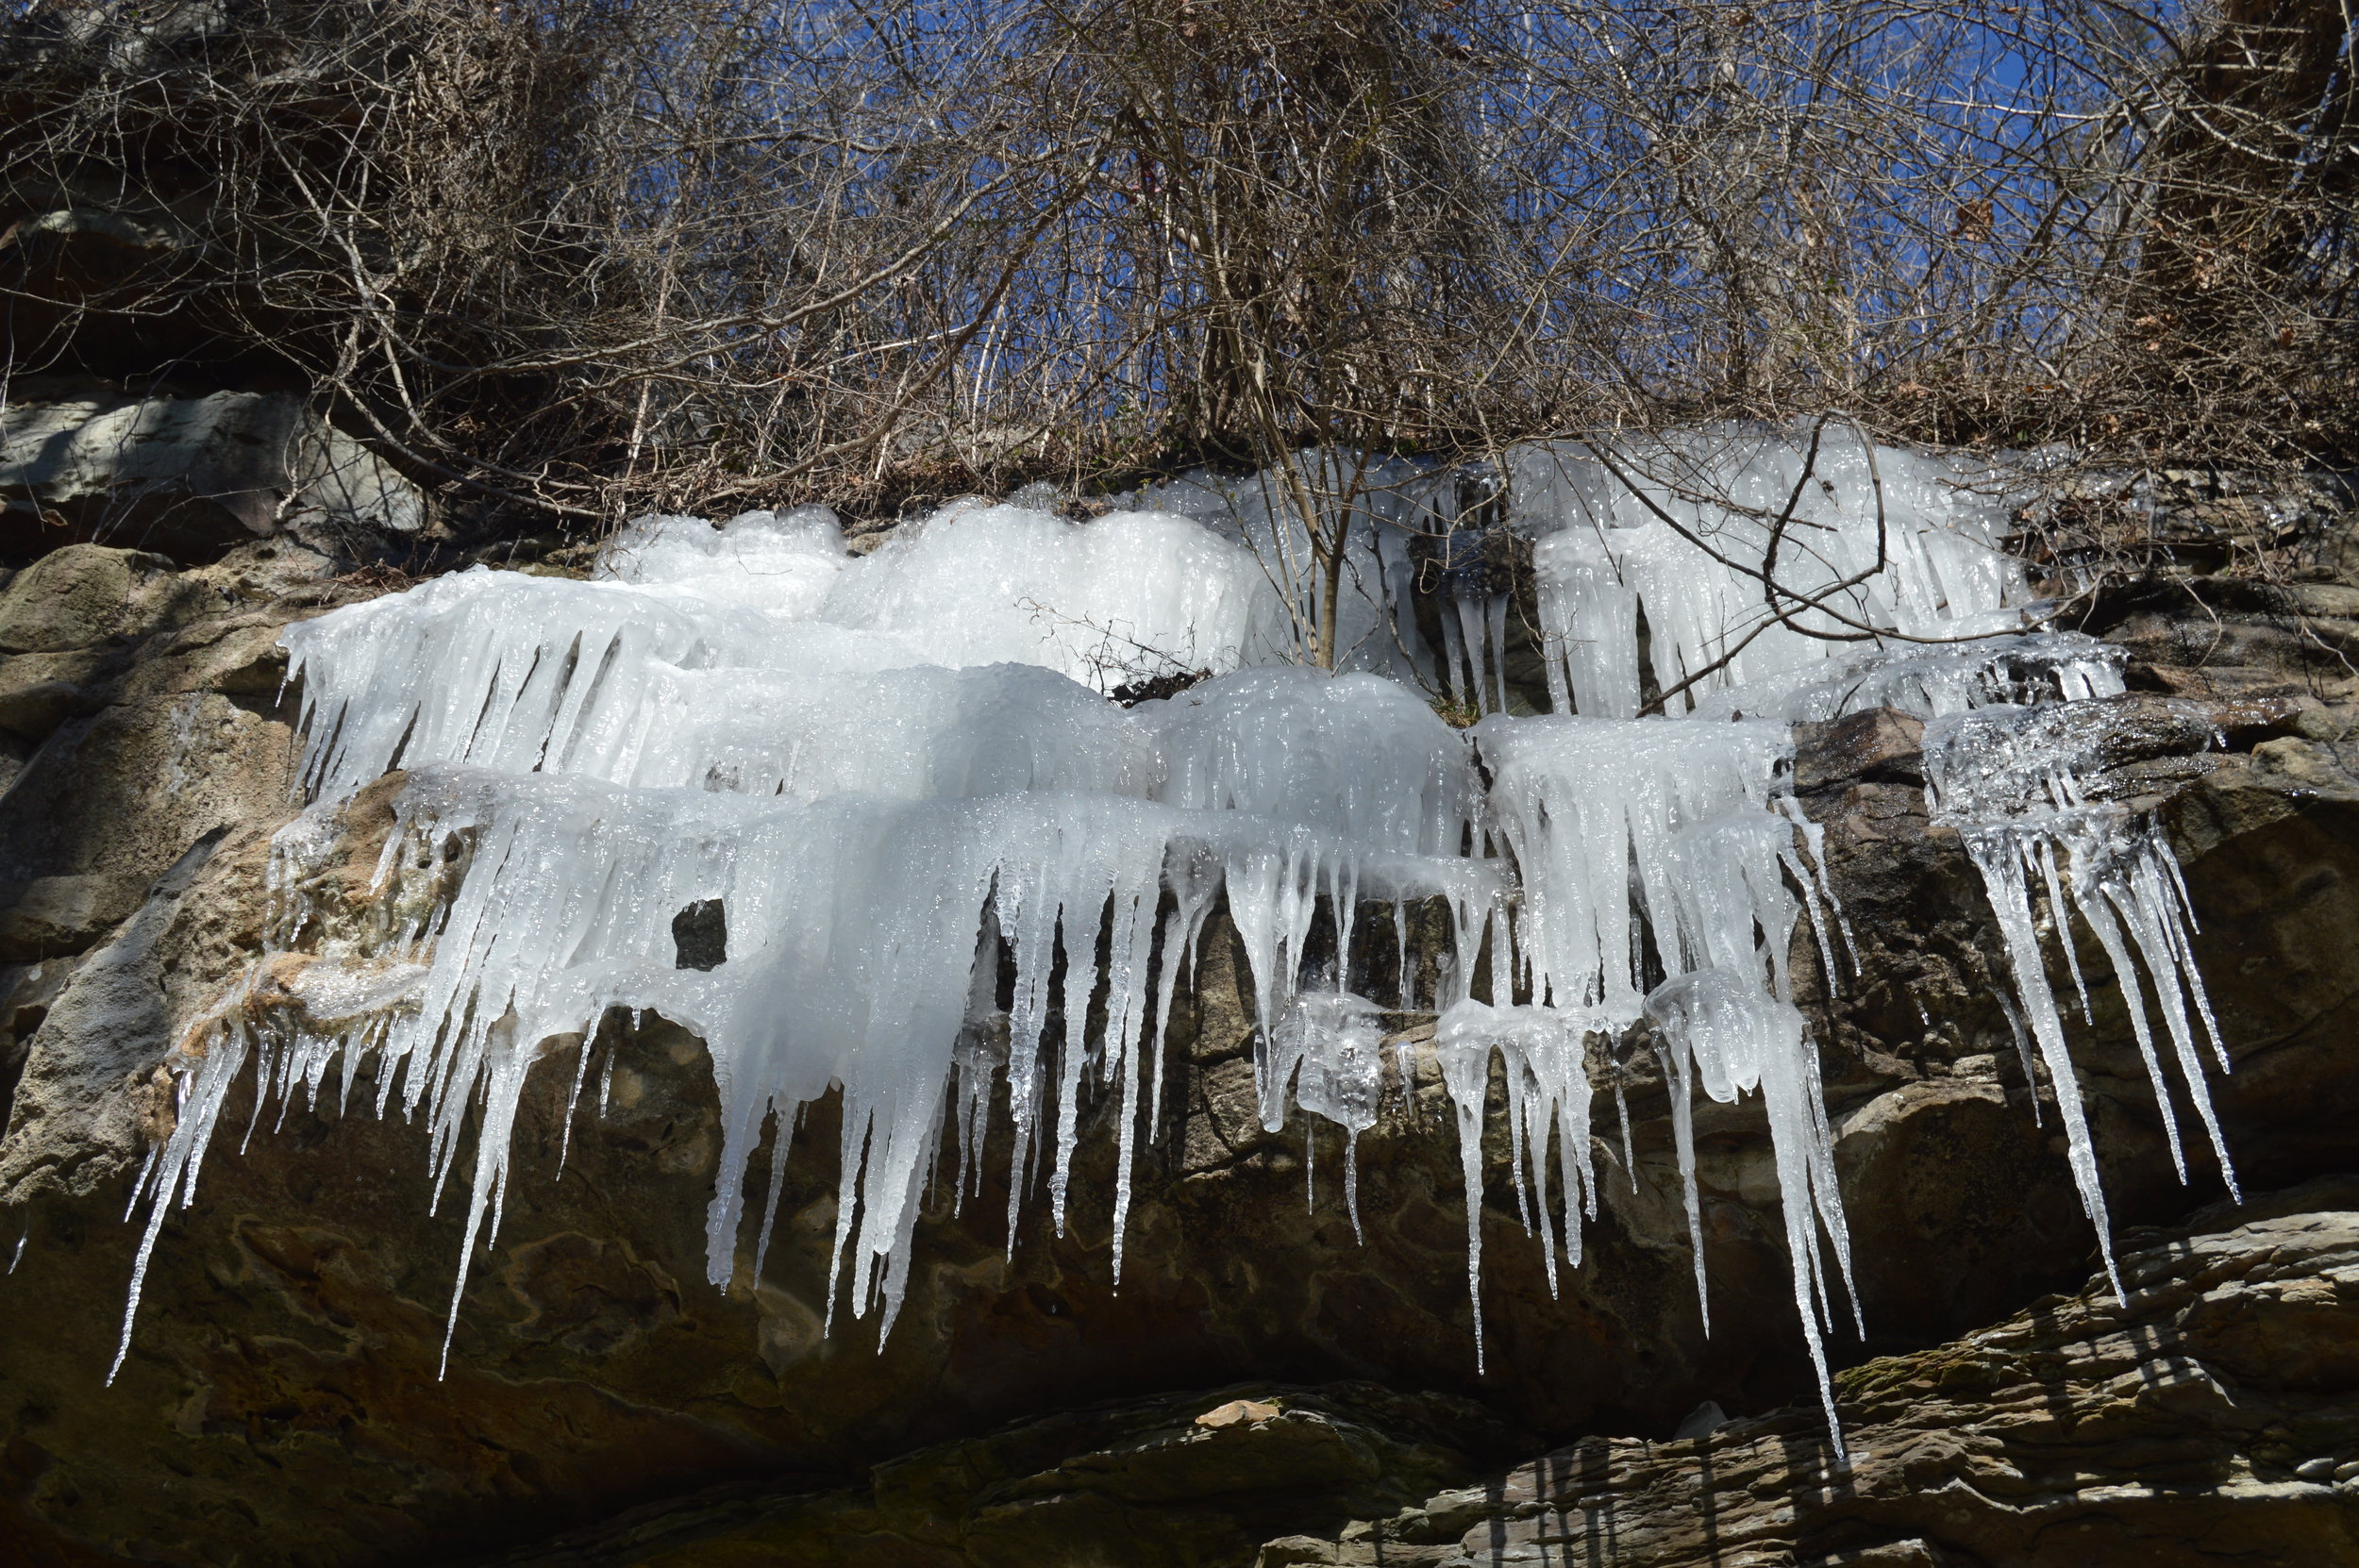 The rock ledges on the trail down to the base of Ozone Falls covered in a wide array of icicles.